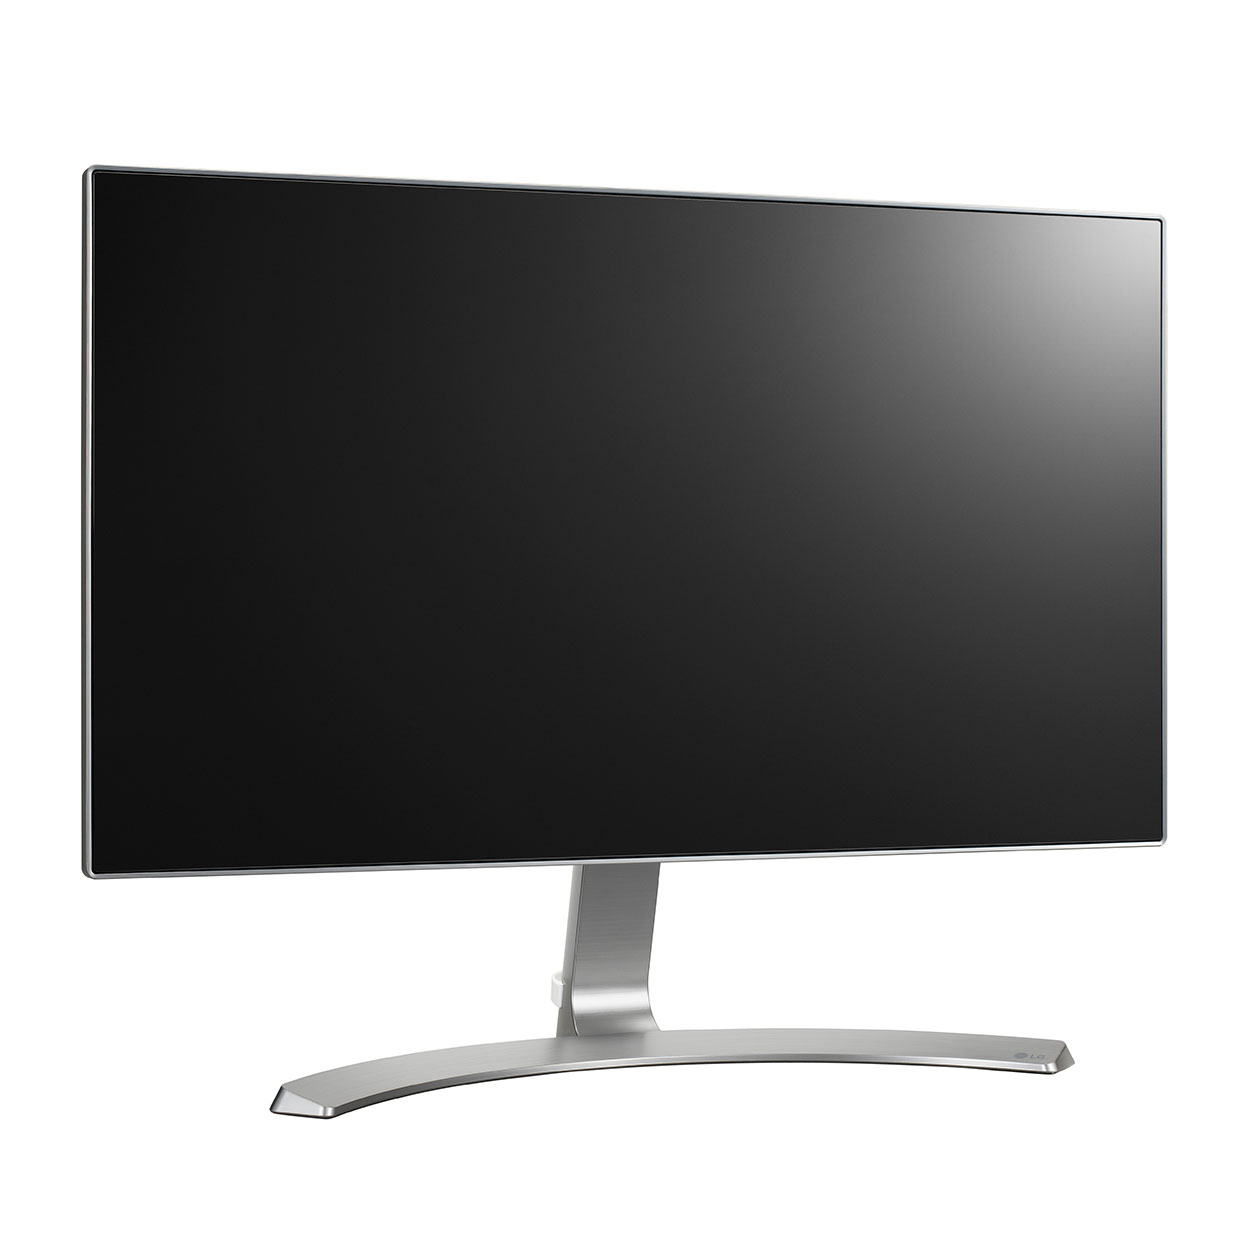 Lg 24 led 24mp88hv s ecran pc lg sur ldlc for Dalle ecran pc